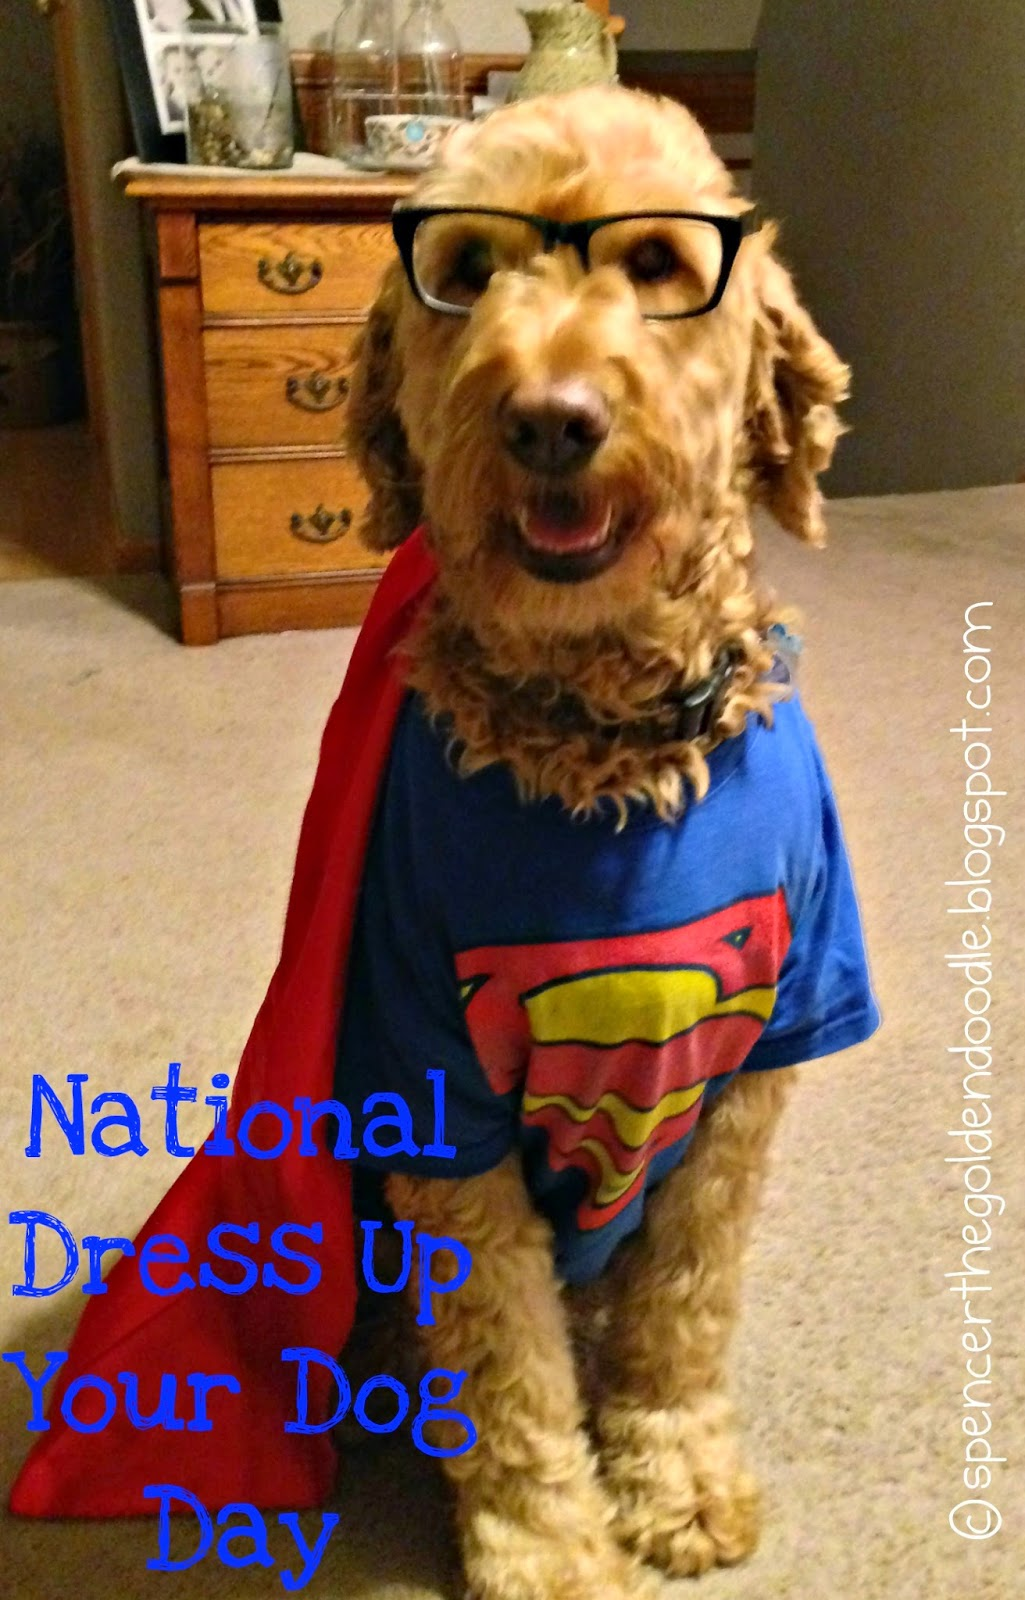 Dress up your pet day - Ww National Dress Up Your Pet Day